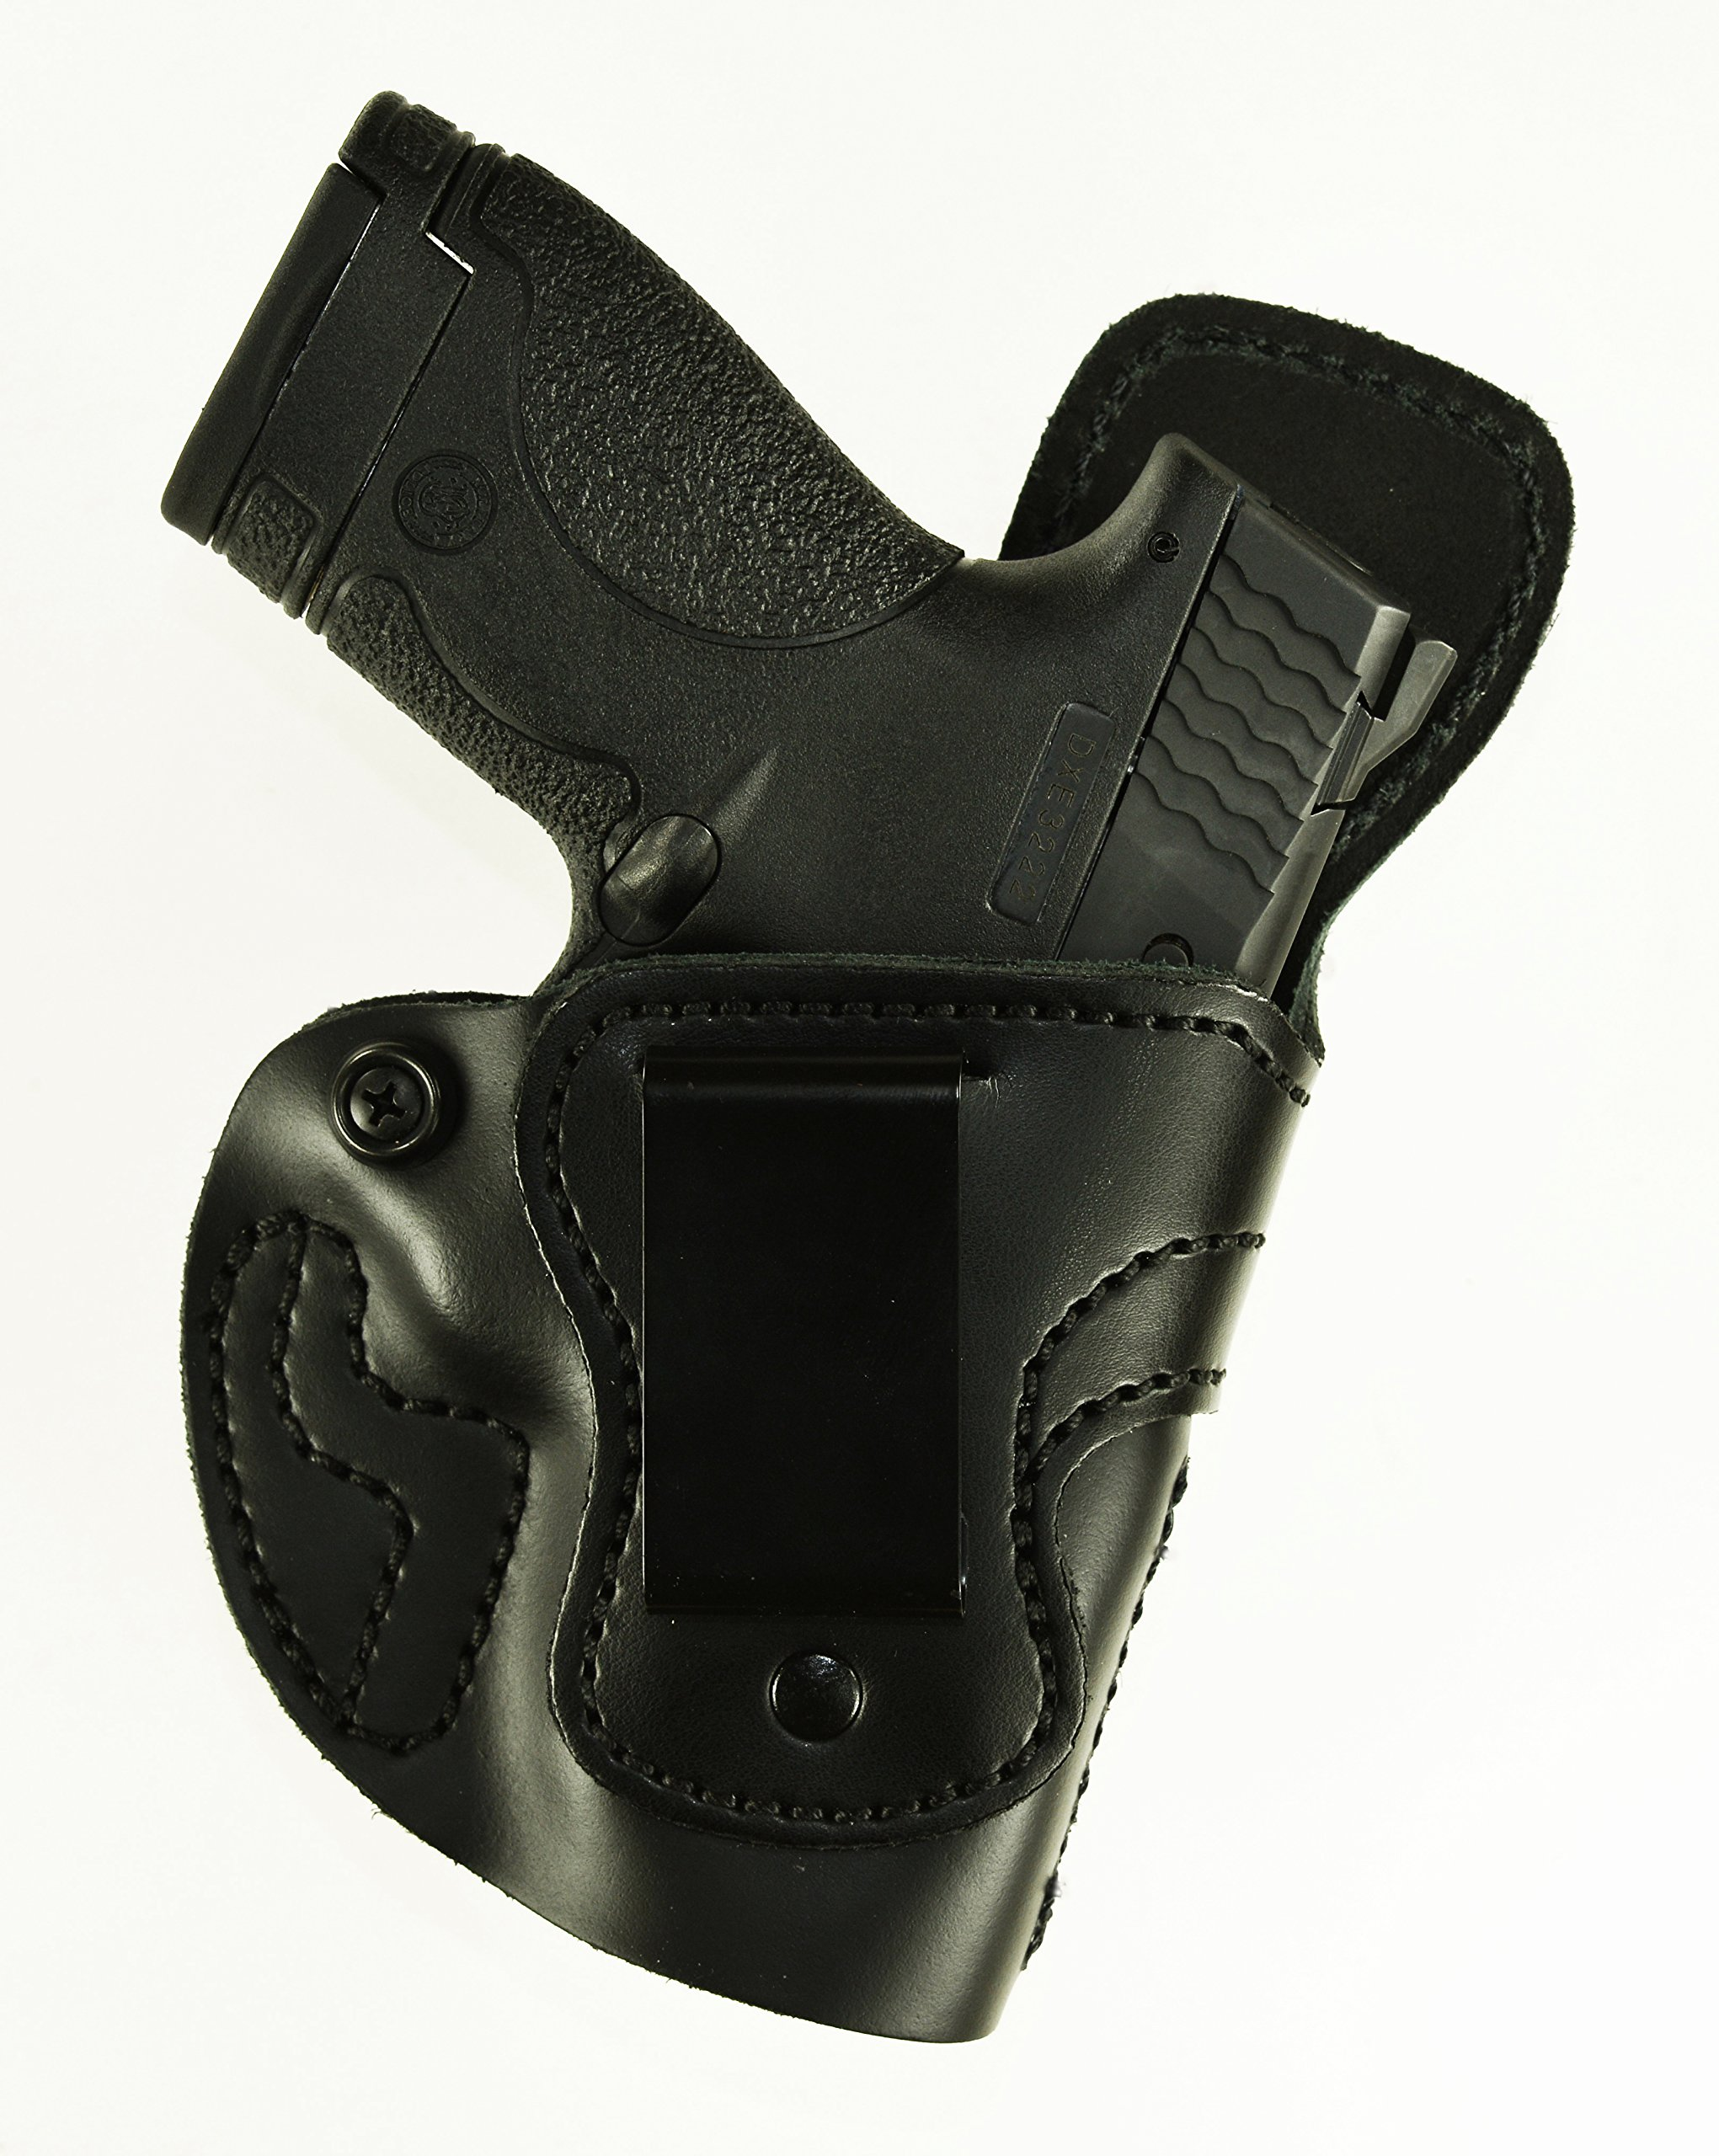 High Noon Holsters right holster